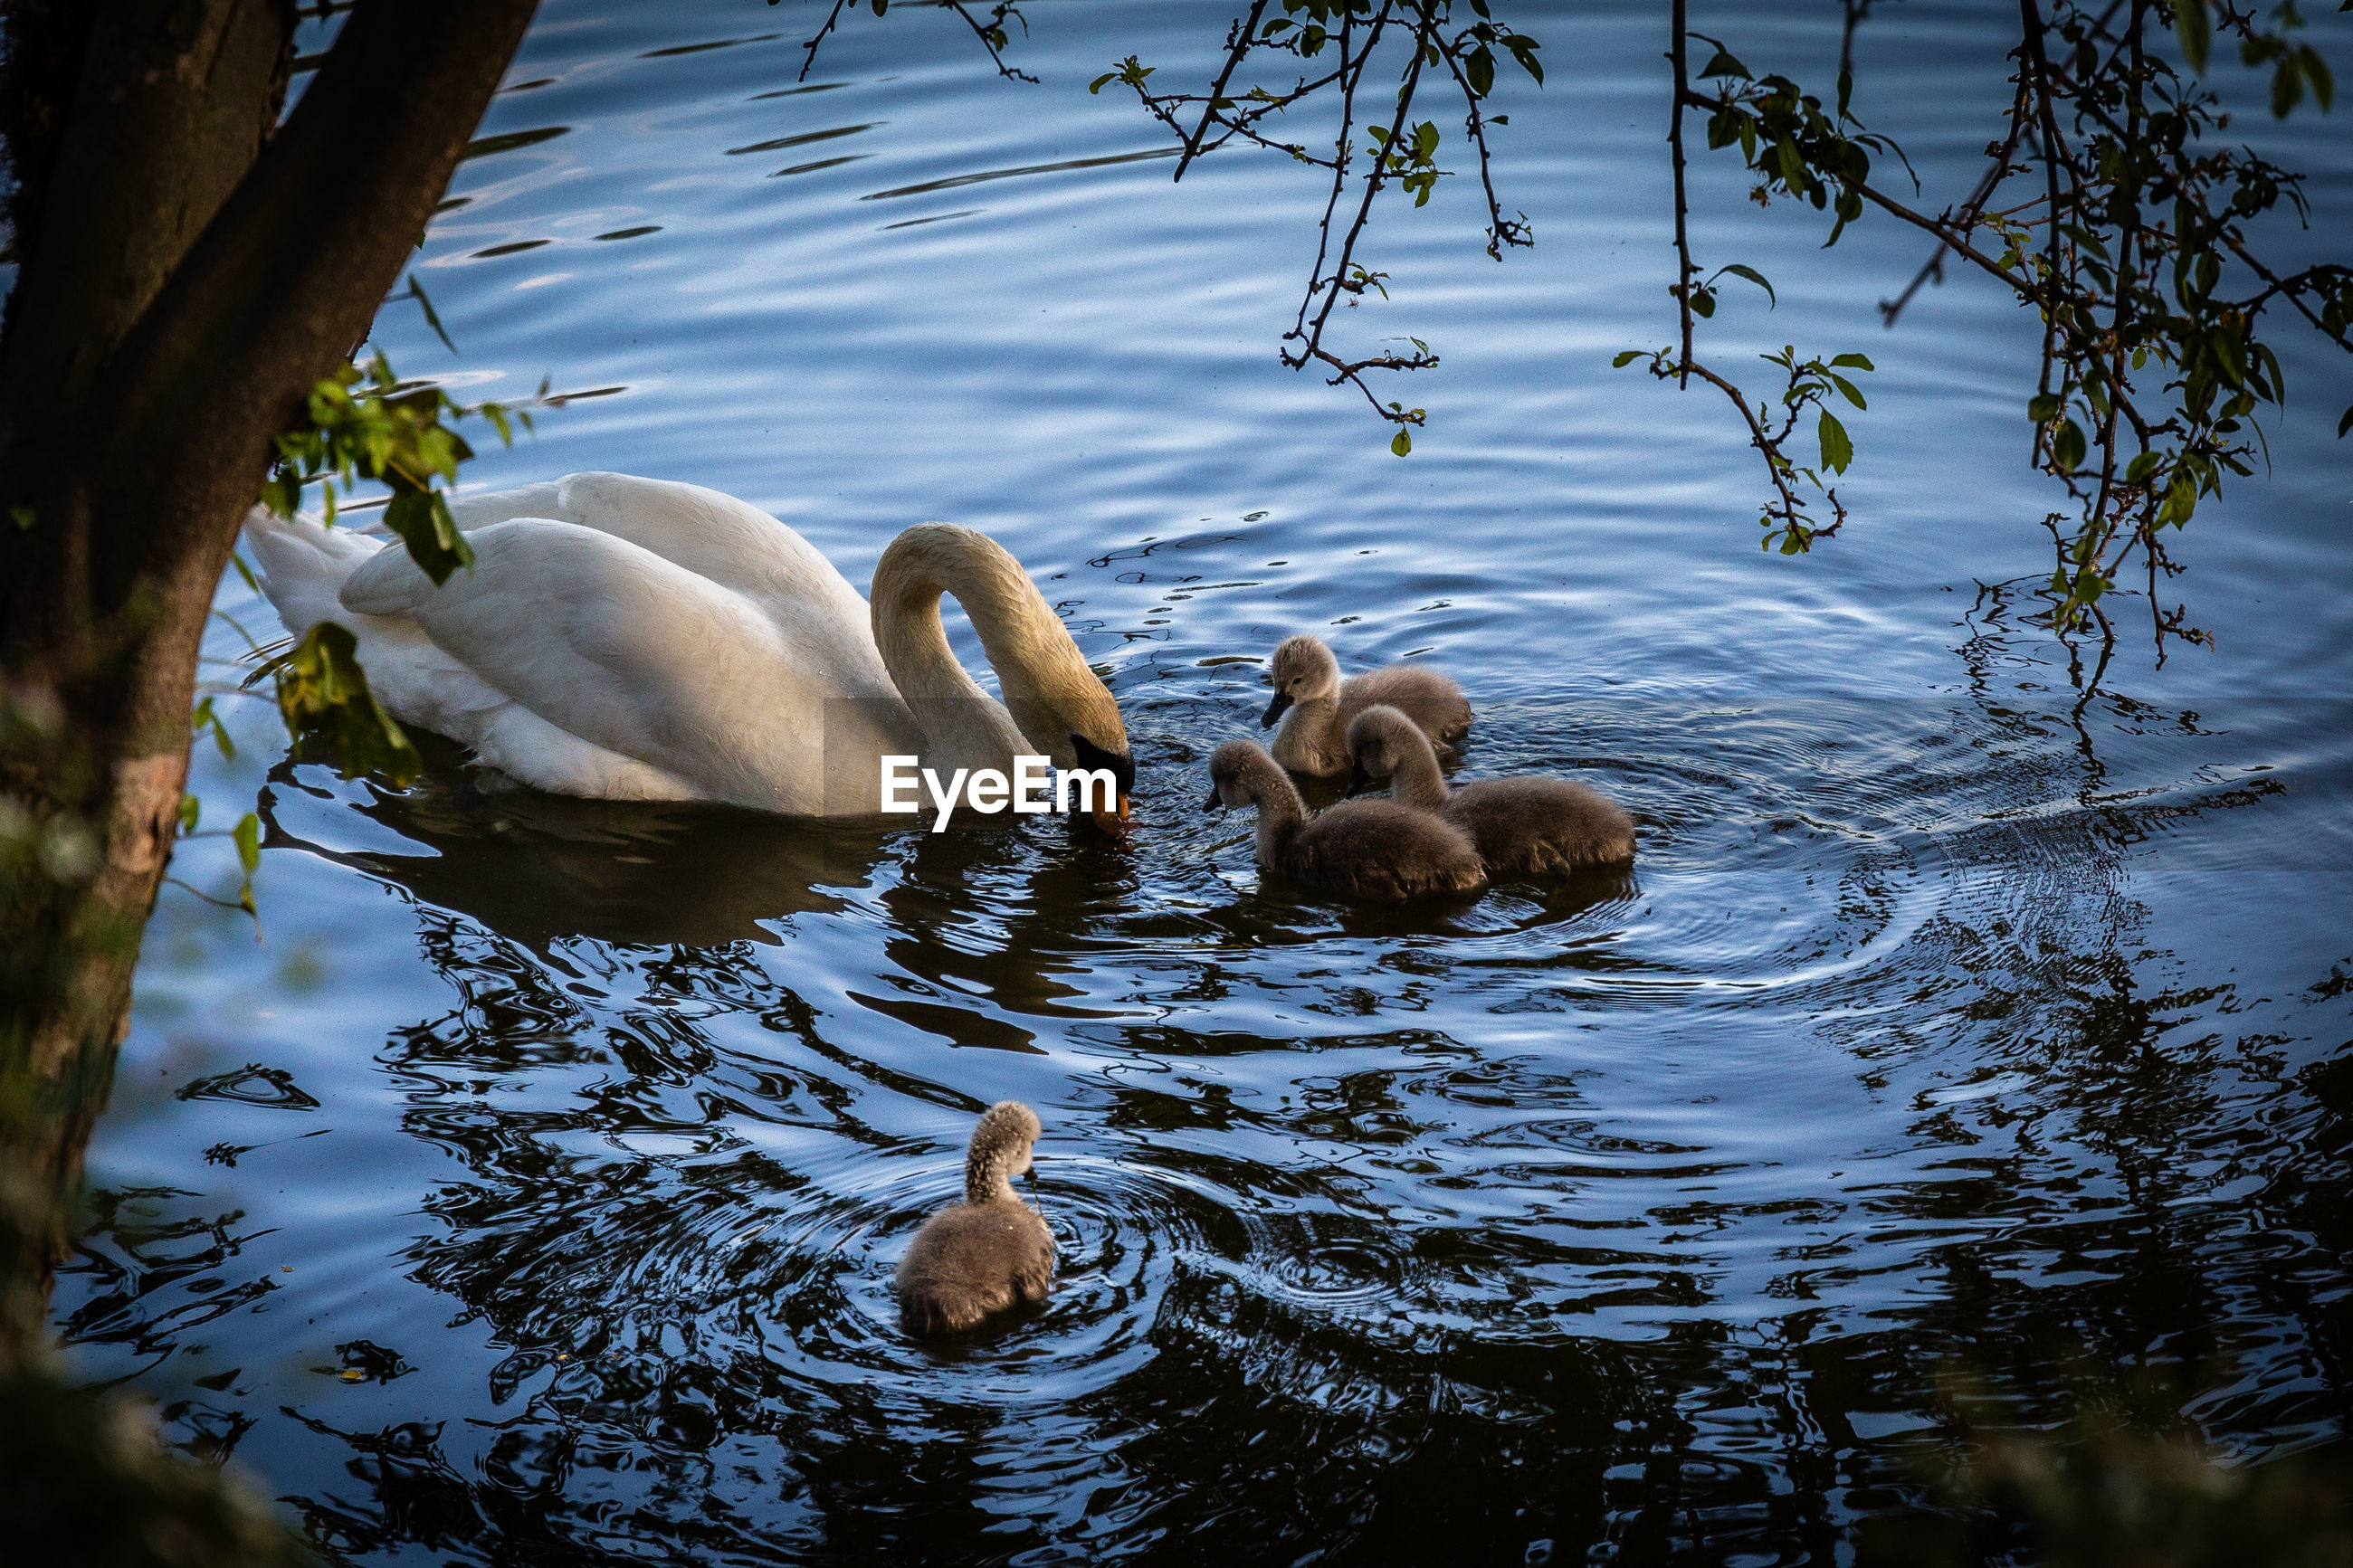 Mute swan foraging with cygnets in lake